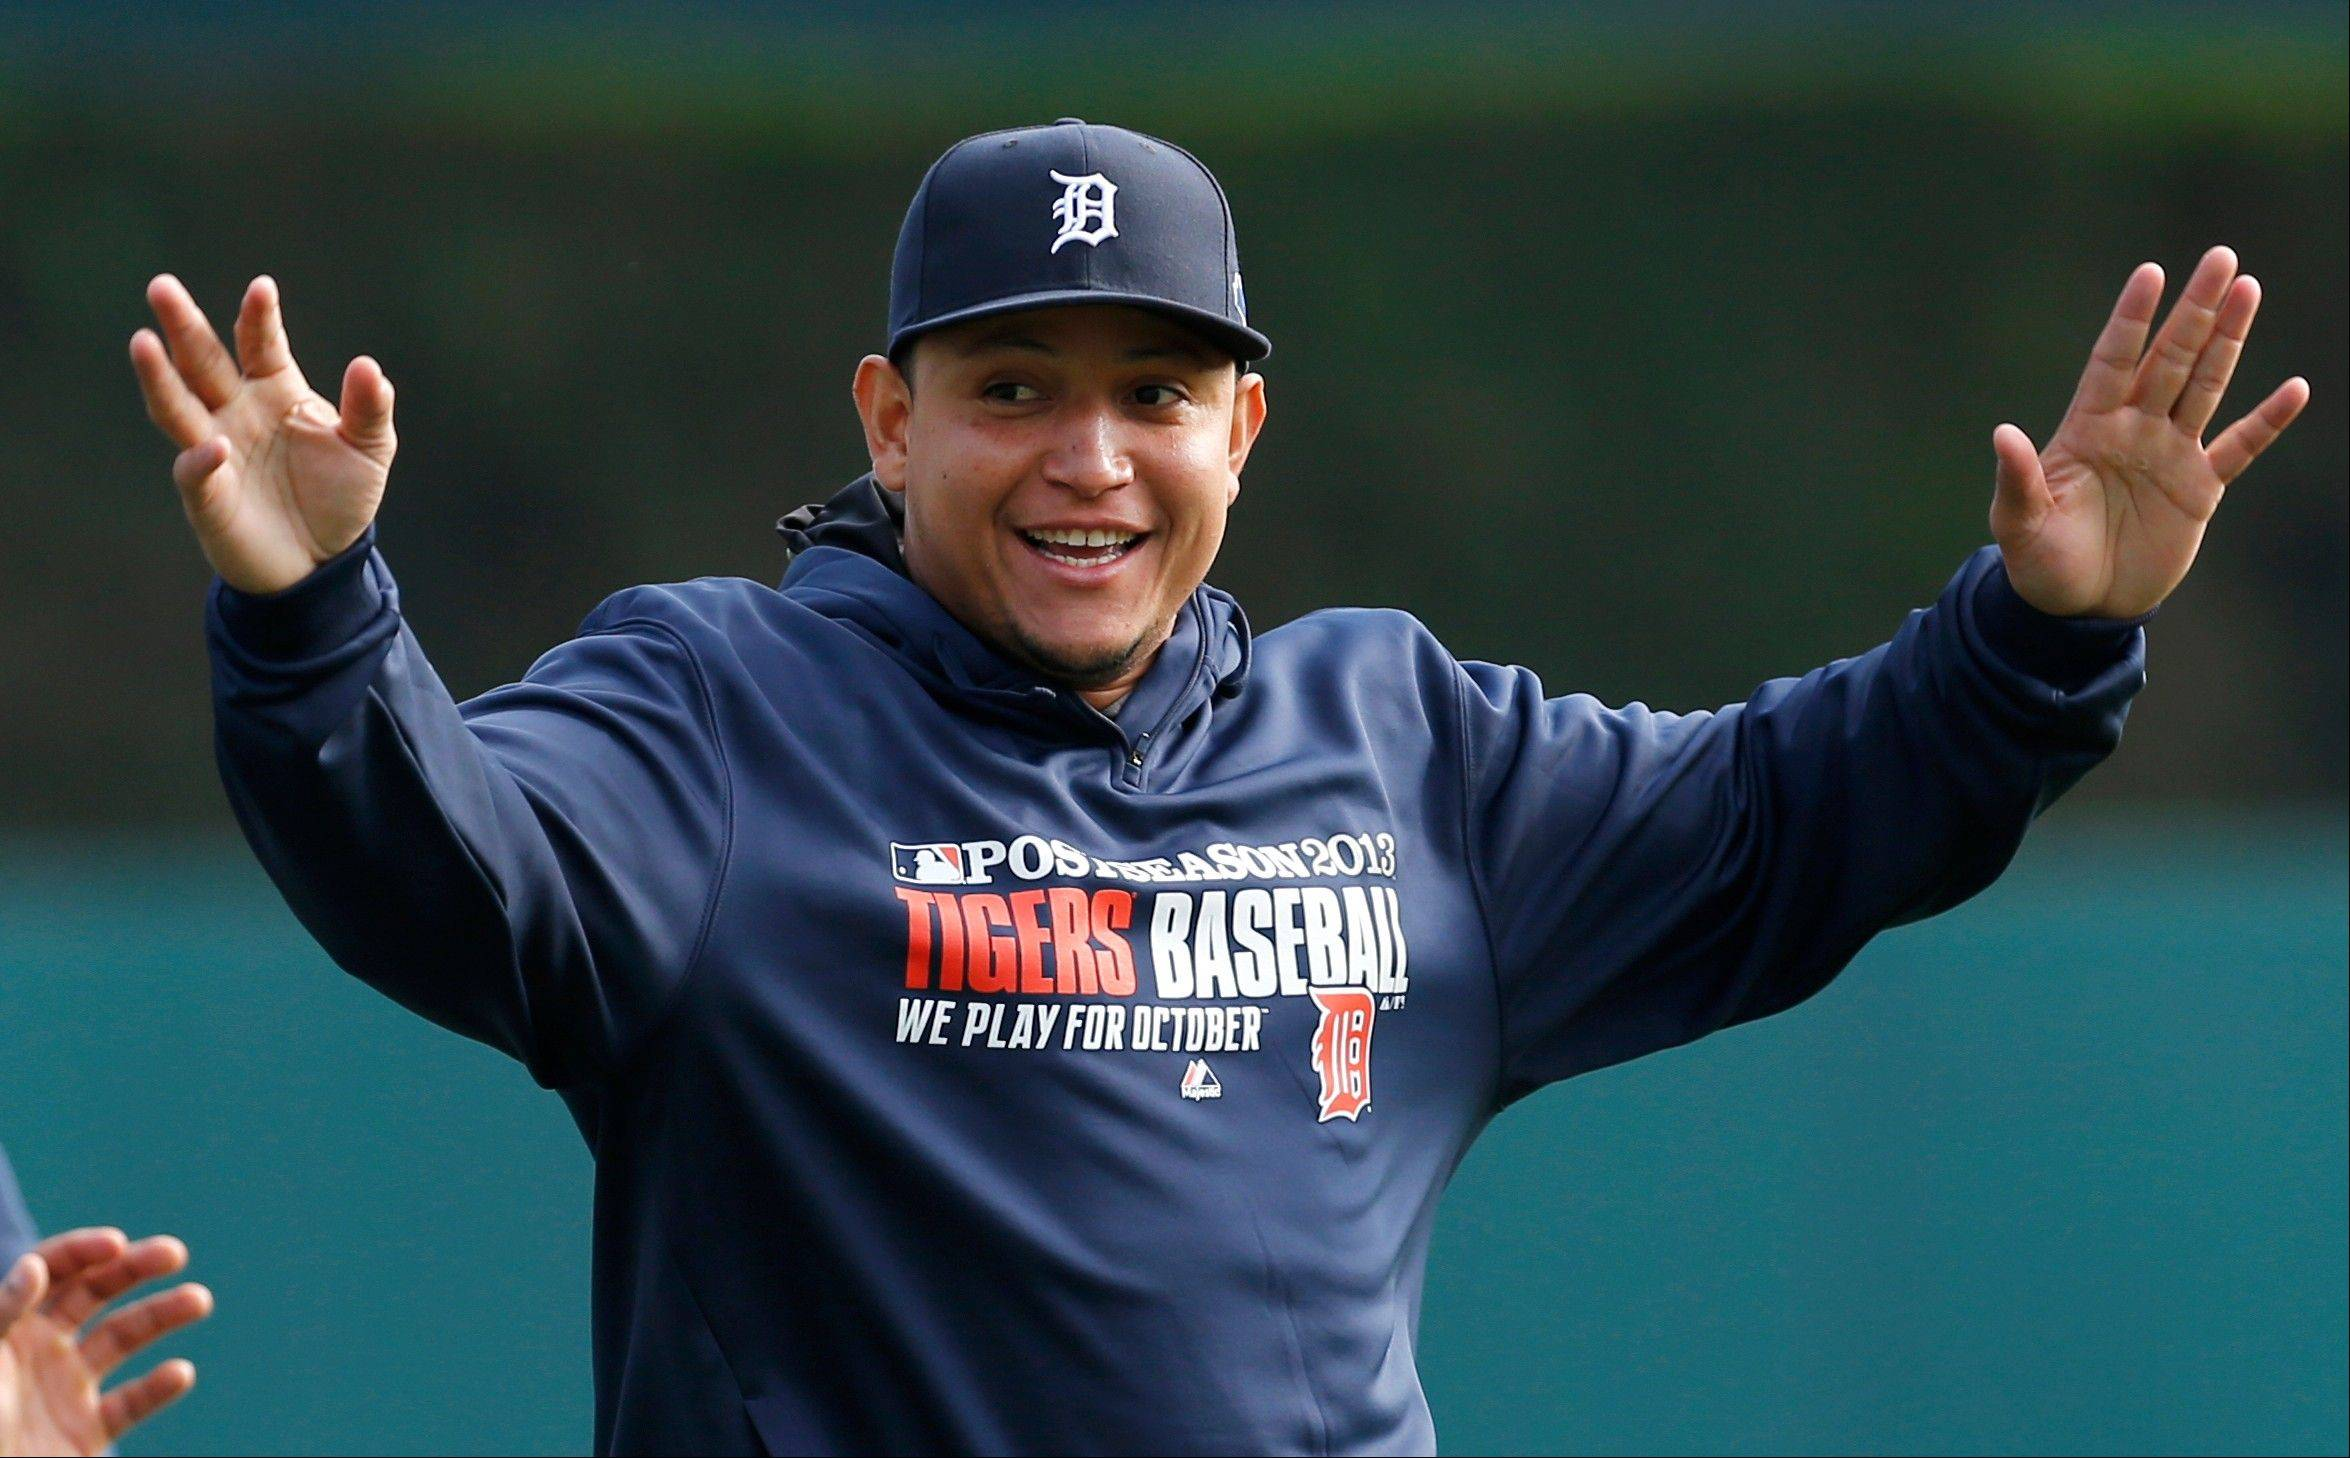 Miguel Cabrera stretches during baseball practice Tuesday in Detroit. The Tigers play the Oakland Athletics in the AL division series starting Friday.